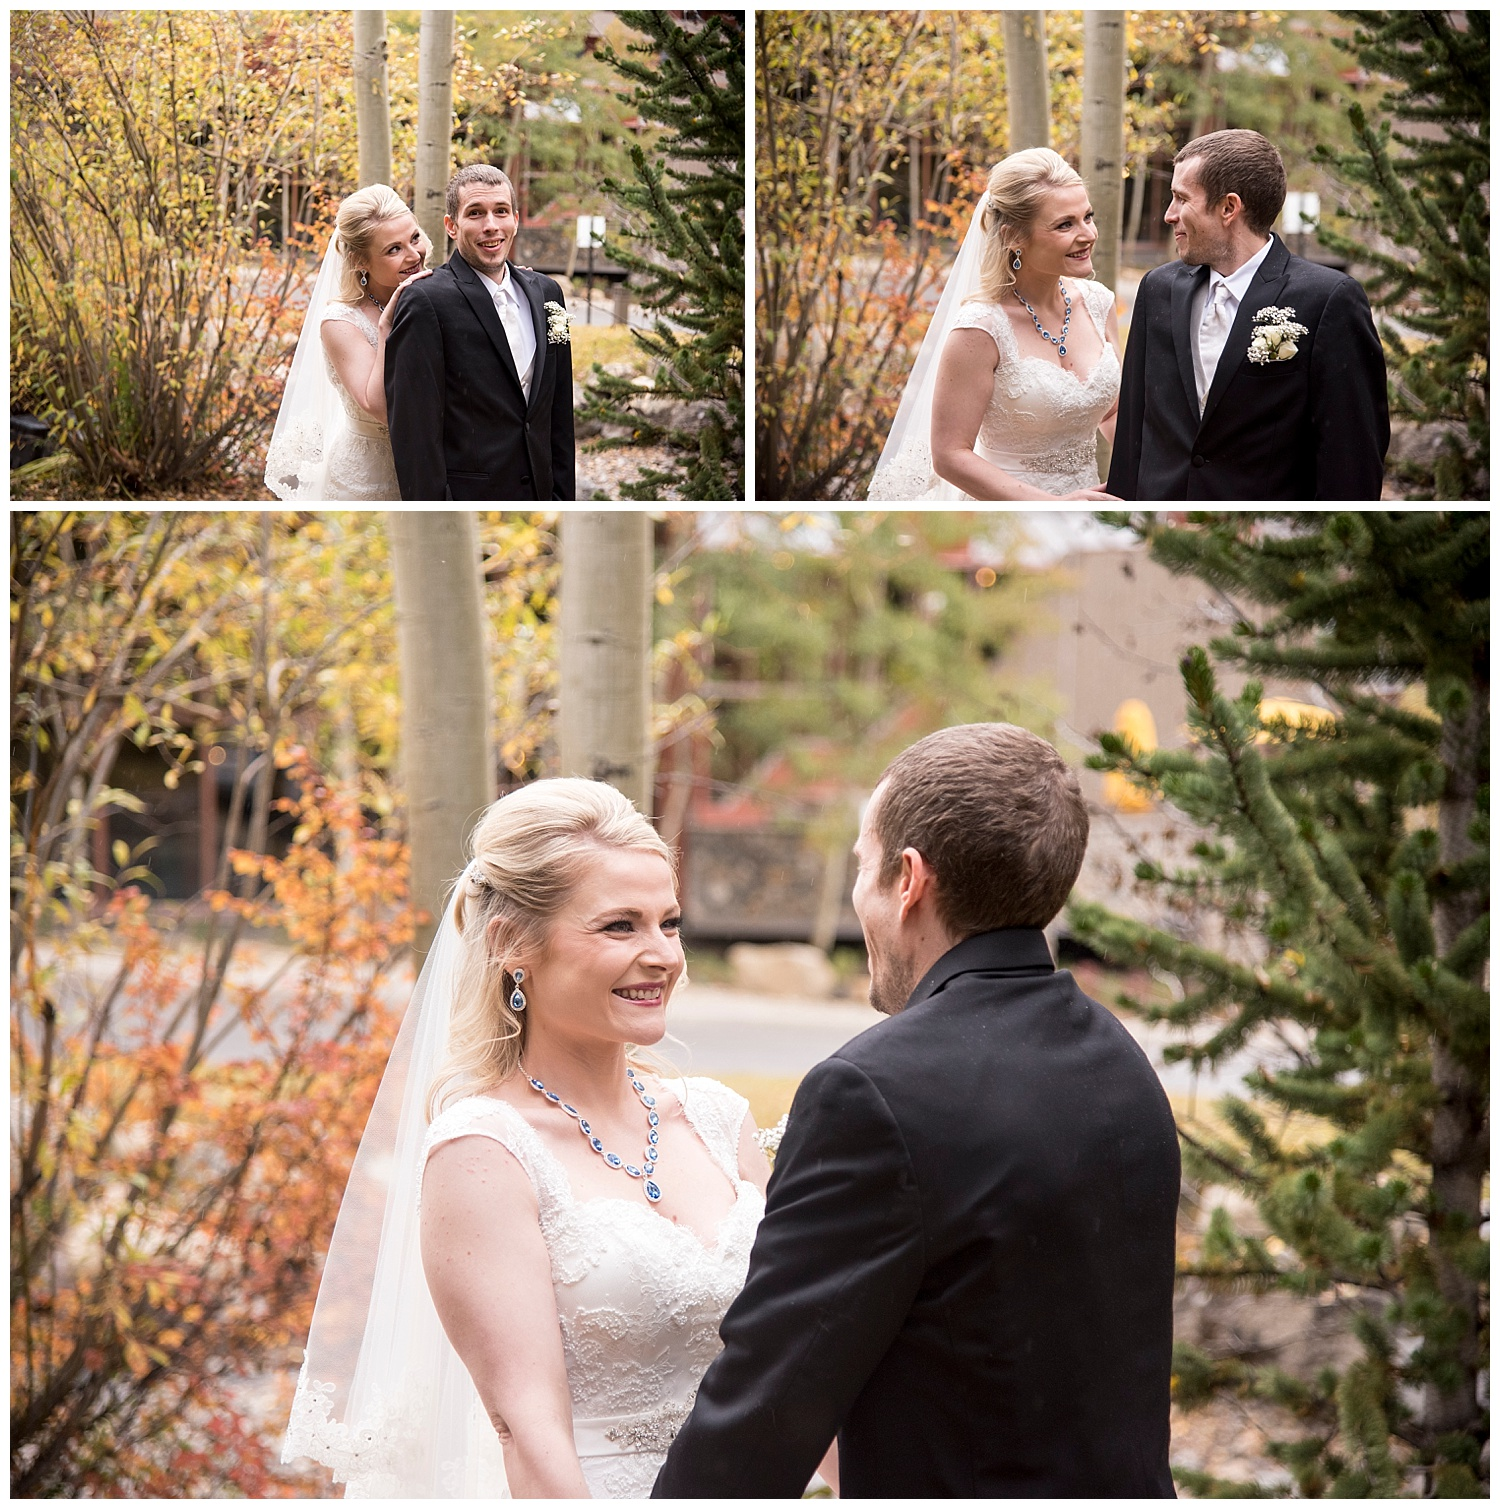 Bride & Groom in Woods | Chris & Destiny's Destination Wedding | Breckenridge Wedding Photographer | Colorado Farm Wedding Photographer | Apollo Fields Wedding Photojournalism